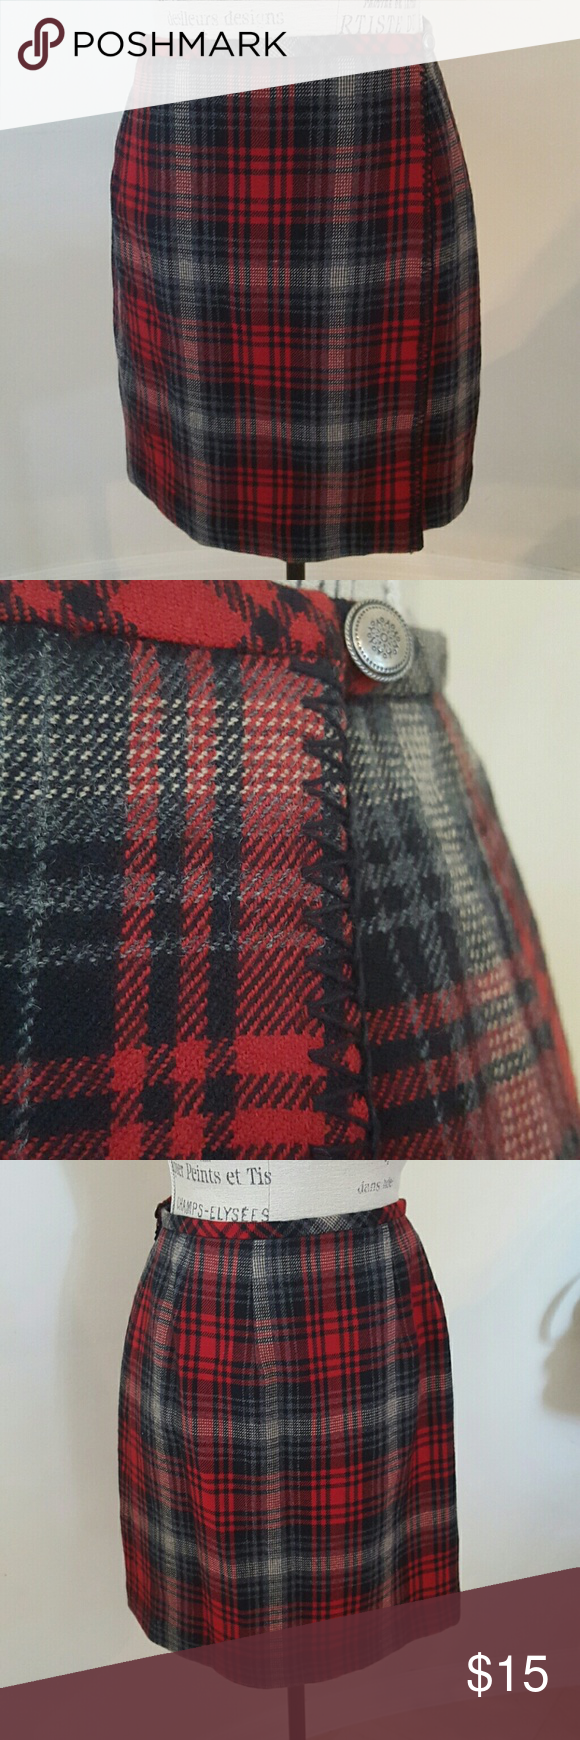 """Eddie Bauer 100% Wool Skirt Fully lined red, gray, and black plaid skirt in a wrap around style  Cant you just see it with black knit tights, and a black ribbed turtleneck.  Add boots and a scarf and voila! Size 8 measures 14"""" laying flat at the waiat and 18"""" long. Eddie Bauer Skirts Mini"""